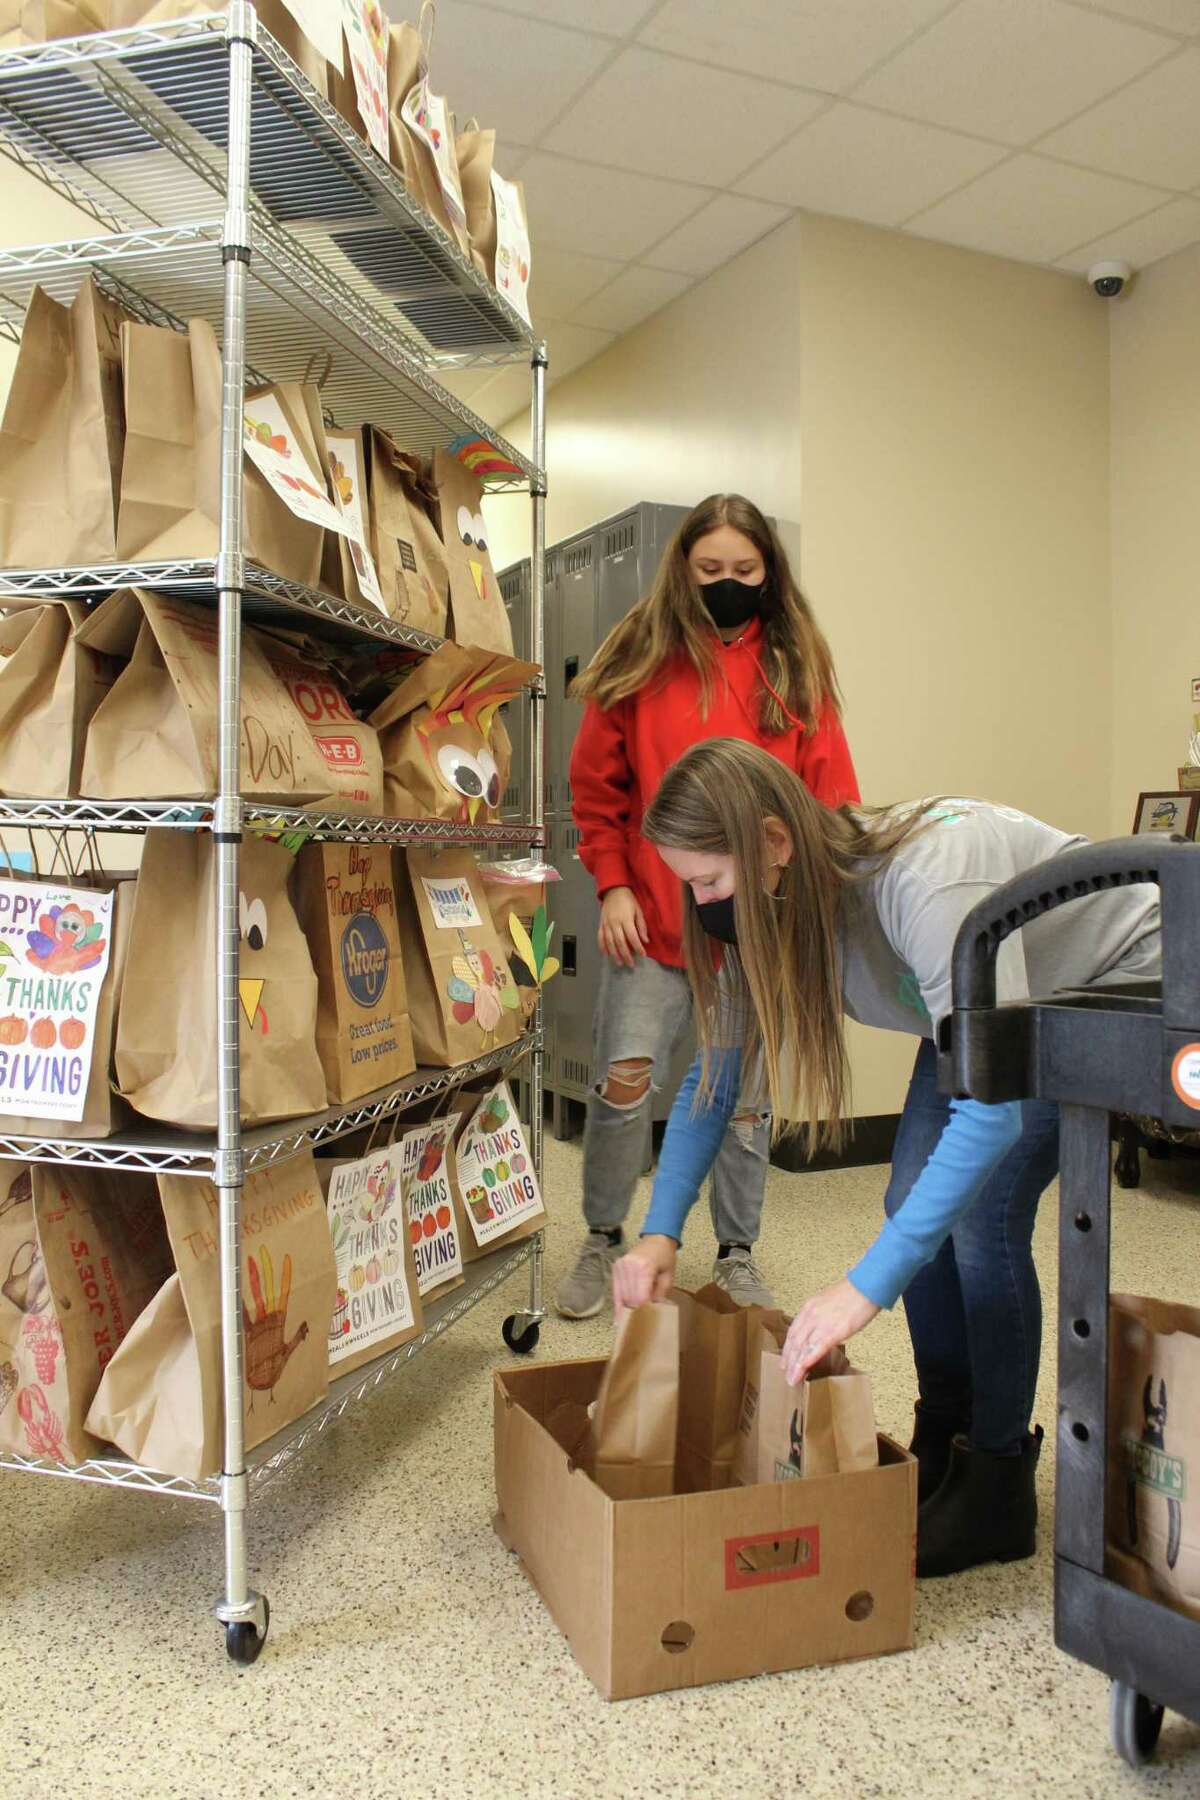 This year, Meals on Wheels Montgomery County will be delivering 692 meal bags to clients on Thanksgiving. Rylan and Misti Burgess, volunteers with the National Charity League Montgomery Monarchs, sort the Thanksgiving meal bags on Nov. 24, 2020.